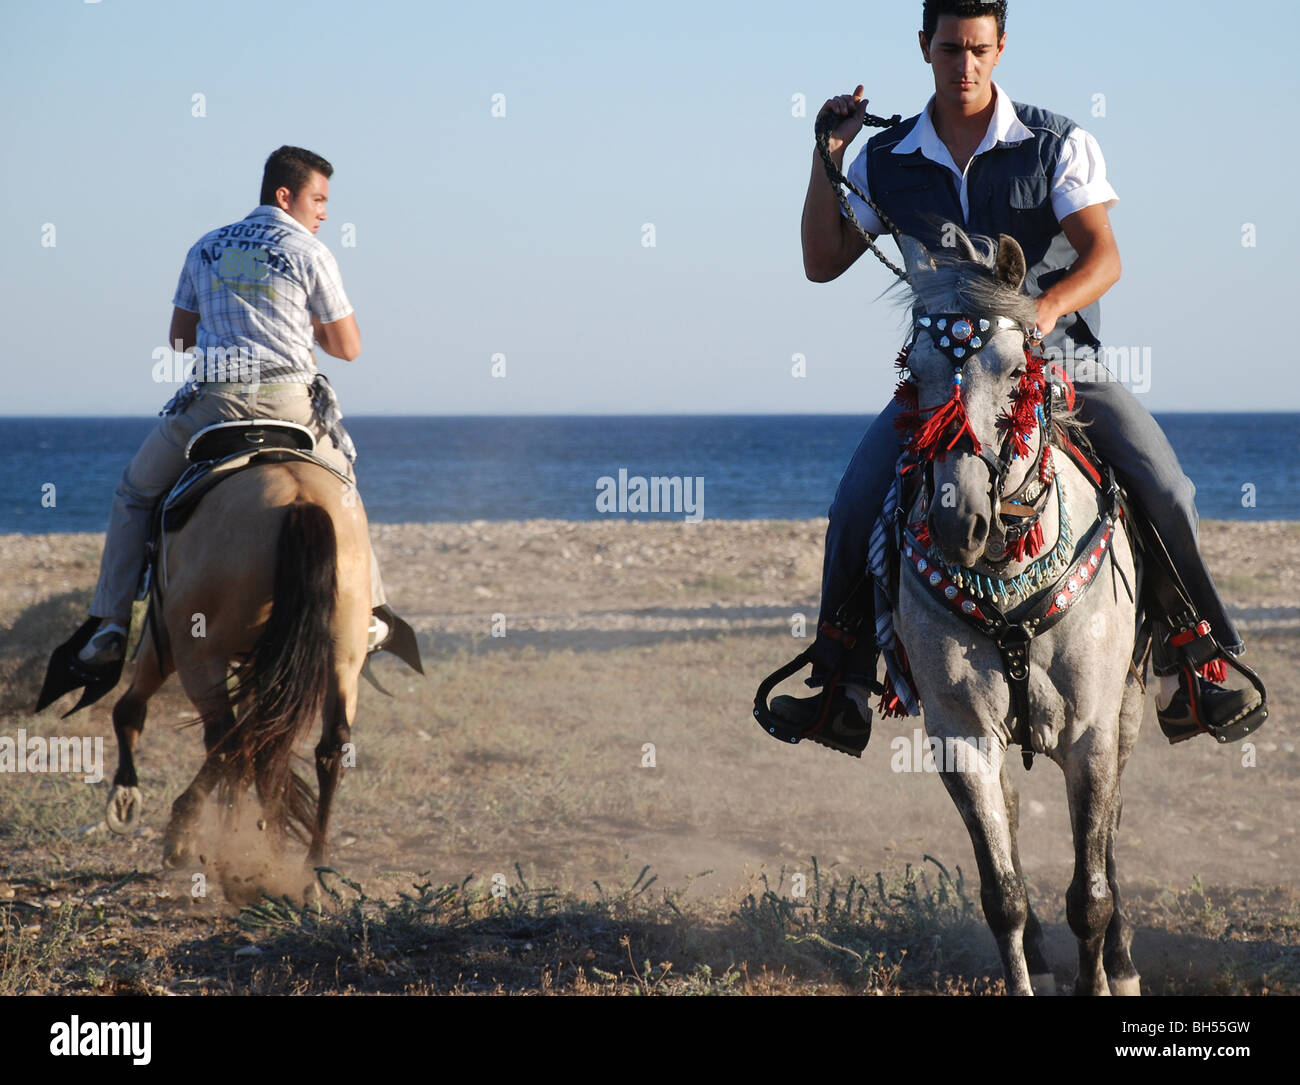 greek cowboys on horseback - Stock Image